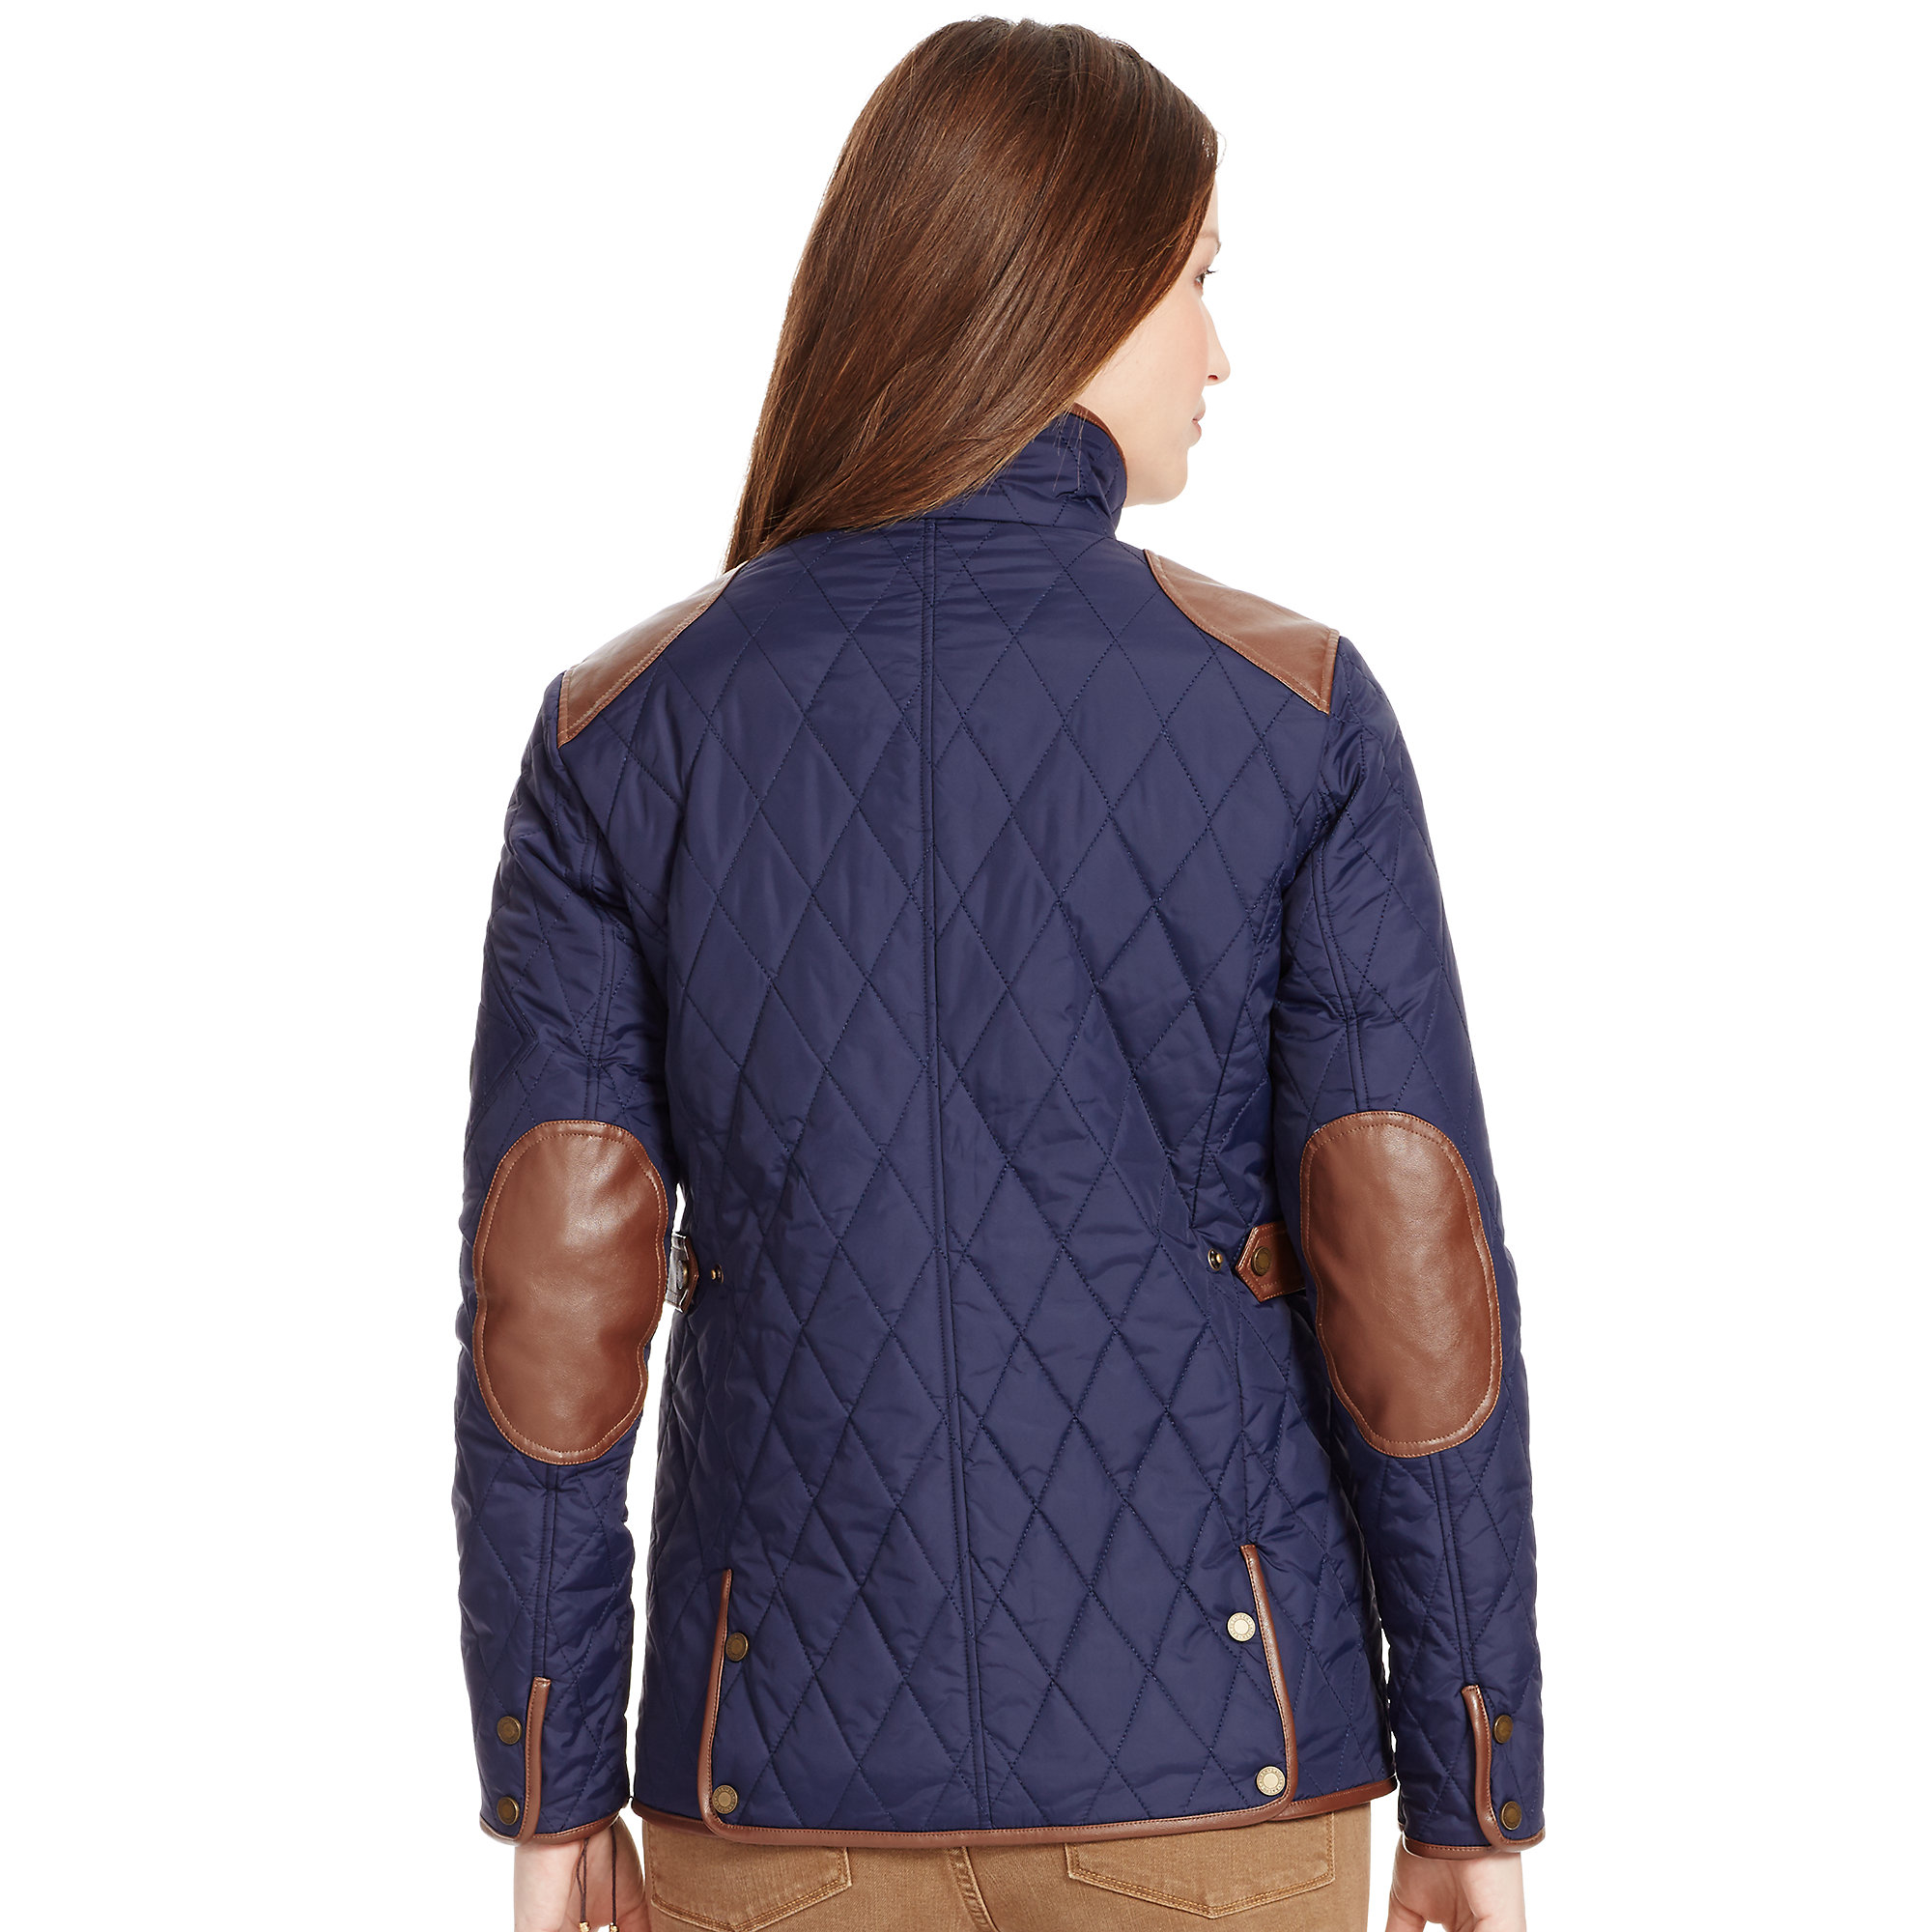 Ralph lauren jackets for women